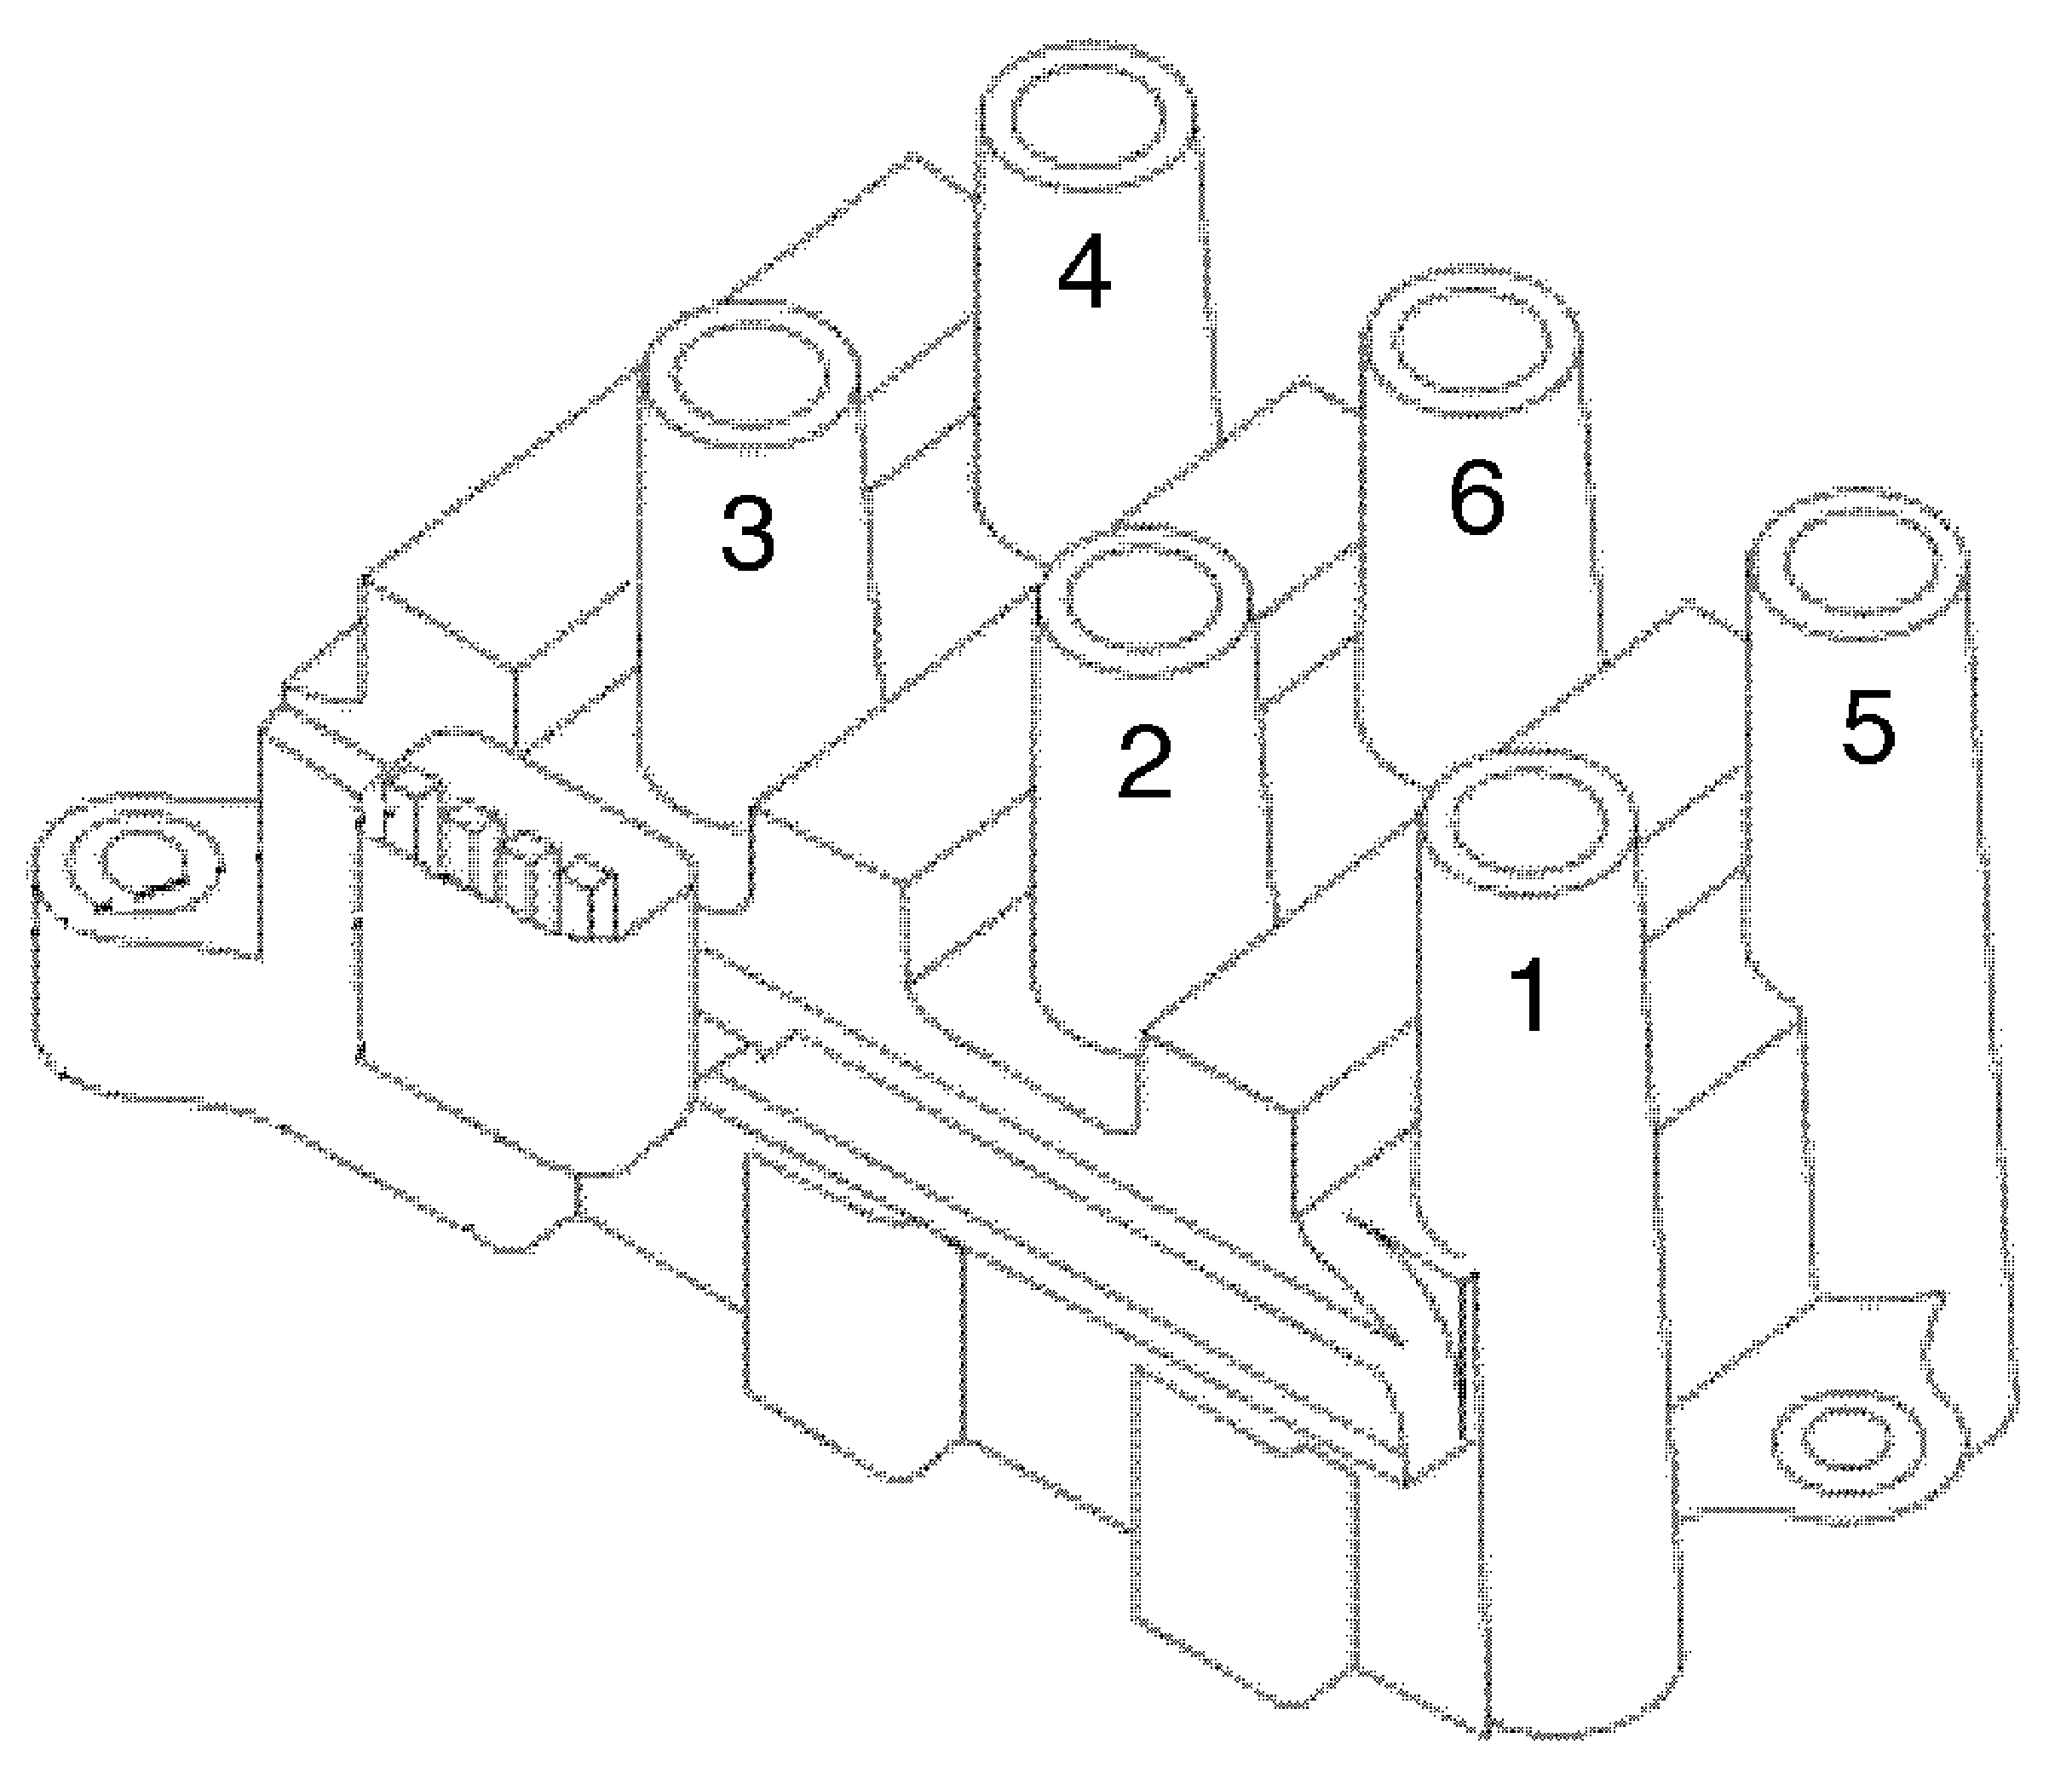 Spark Plug Wires Diagram: I Am Trying To Put My Spark Plug